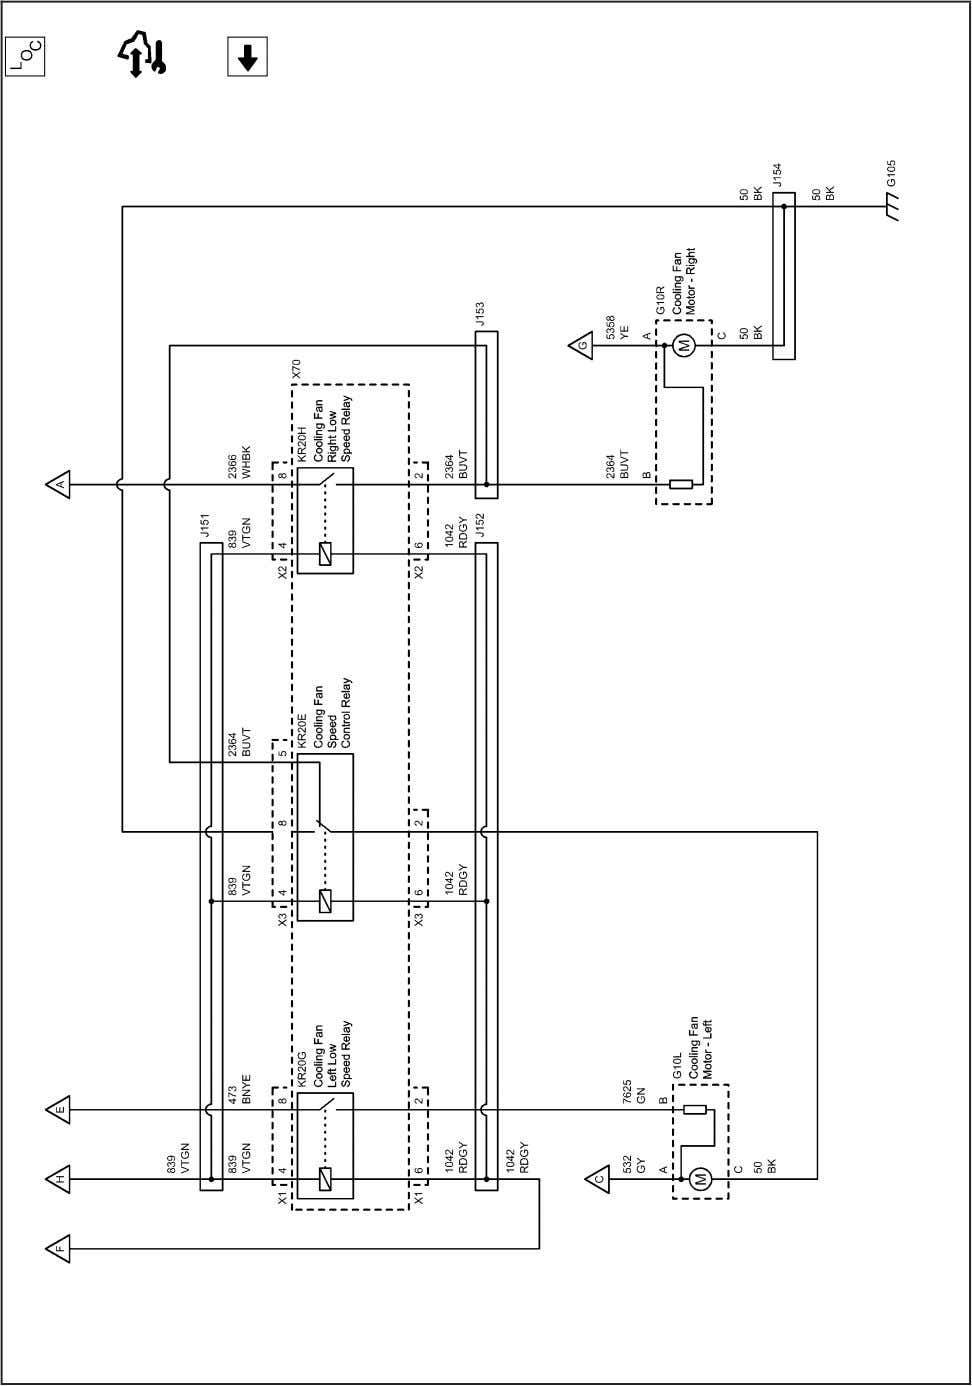 9-30 Engine Cooling 2202994 Engine Cooling Schematics (Engine Cooling (2 of 2) (LLW)) 2010 - Cruze